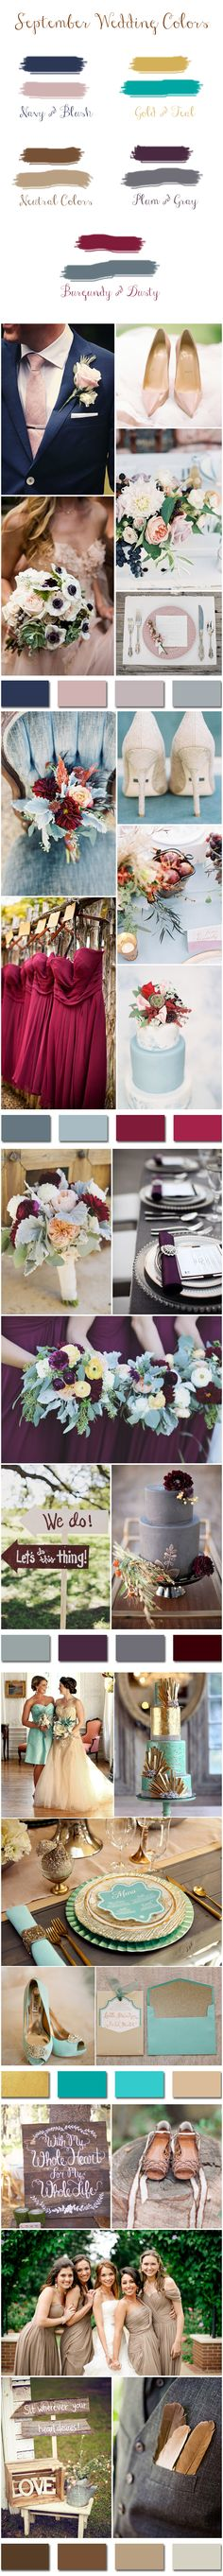 Top 5 Fall Wedding Colors for September Brides So maybe it doesnt have to be prison orange? lol october wedding colors schemes / fall wedding ideas colors october / fall wedding ideas november / fall winter wedding / fall colors for wedding September Wedding Colors, Best Wedding Colors, Wedding Color Schemes, Wedding Themes, September Flower, Wedding Ideas For September, September Colors, October Fall, April Wedding